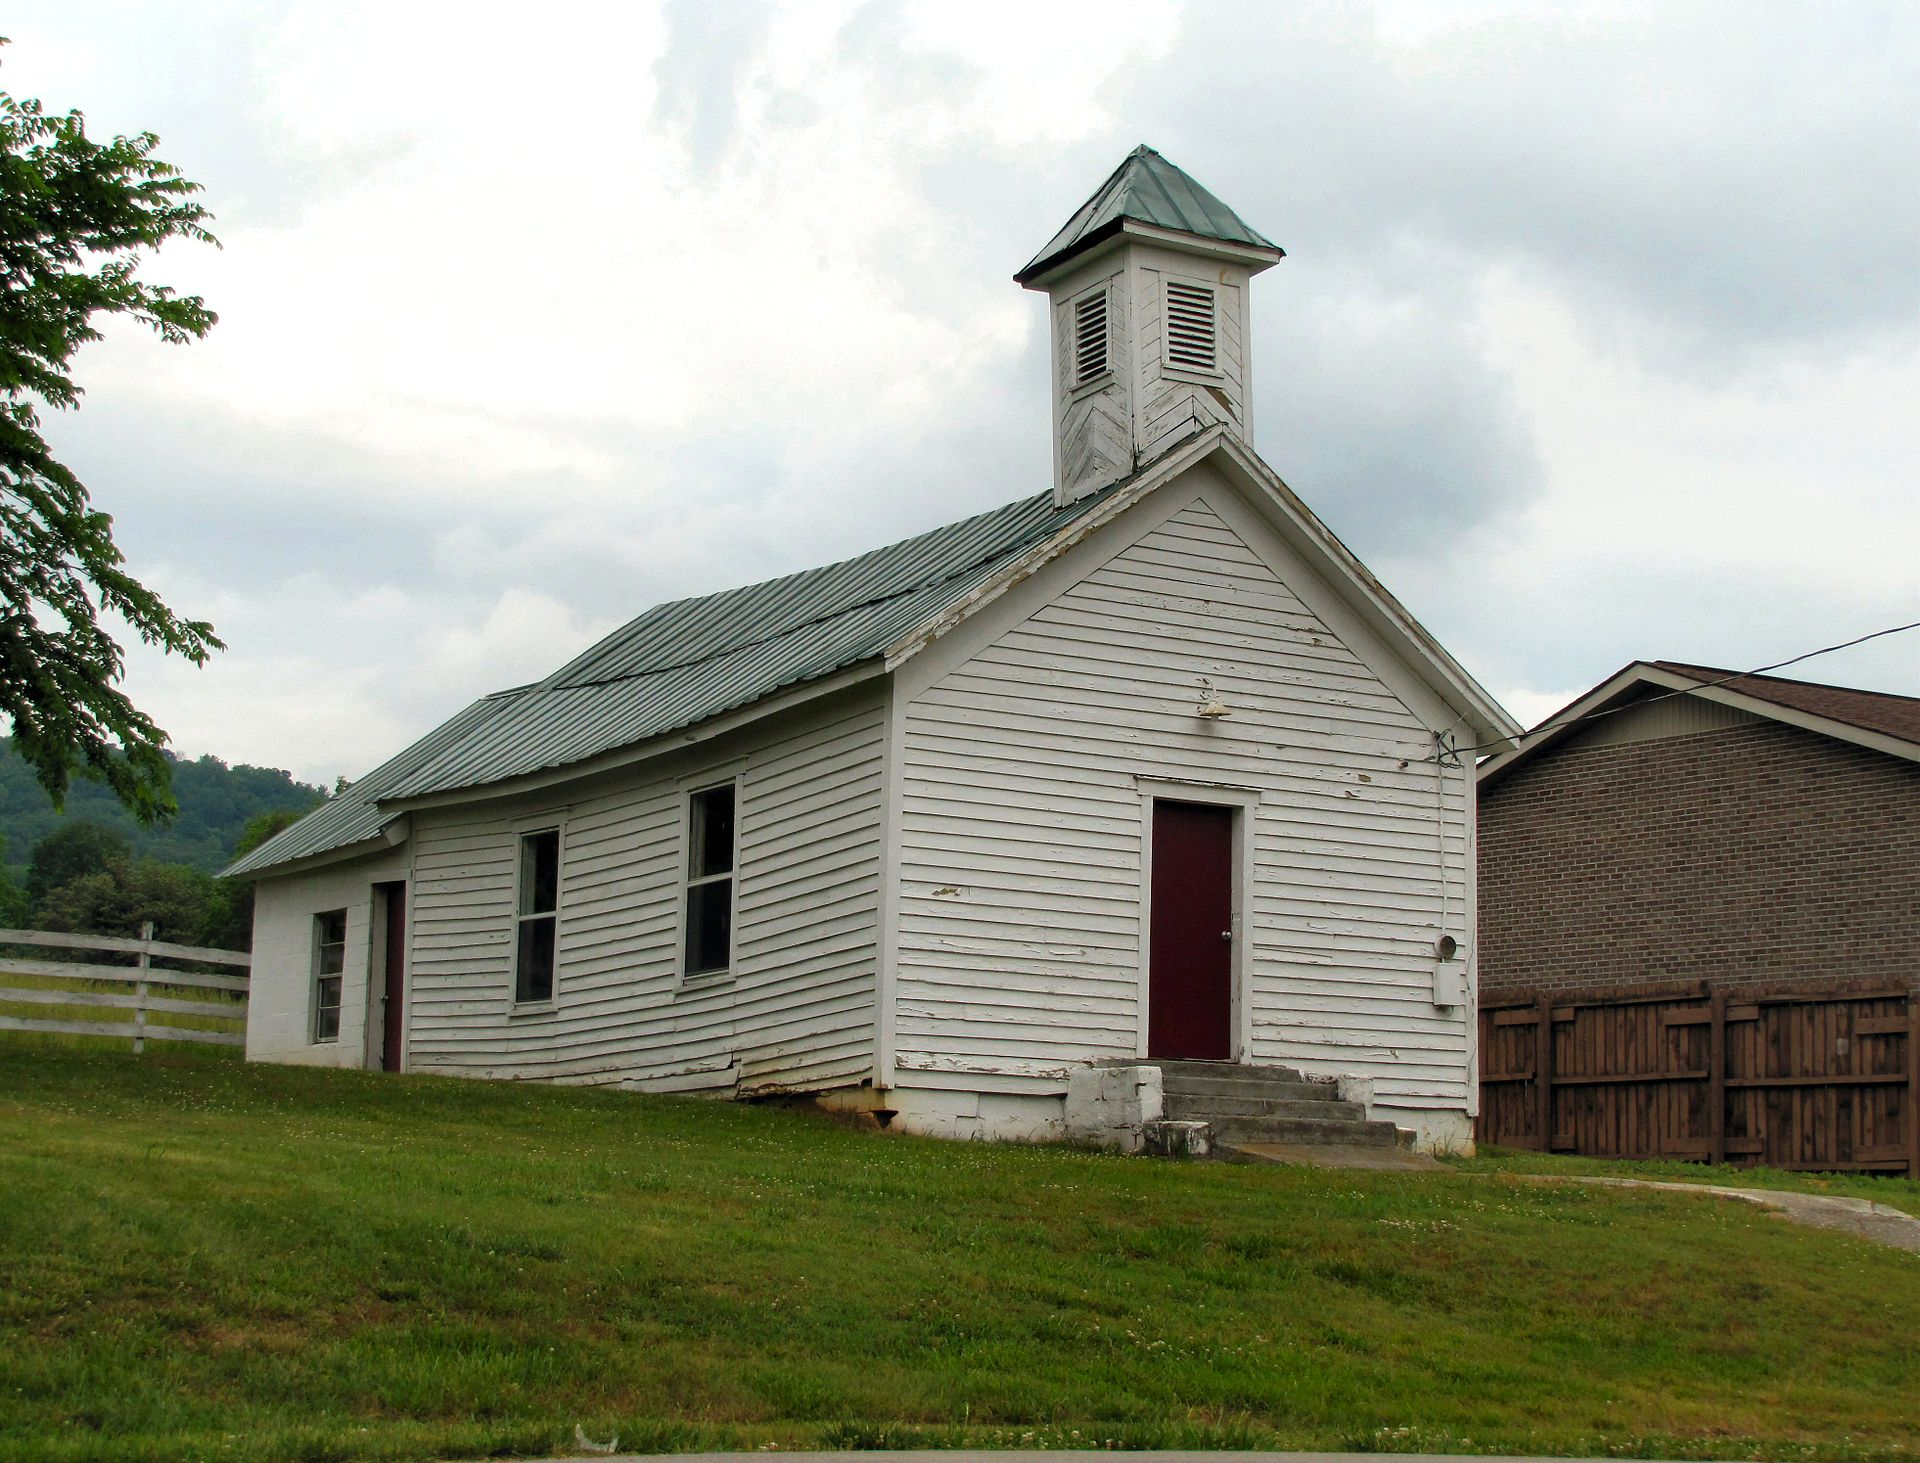 Henderson AME Zion church today